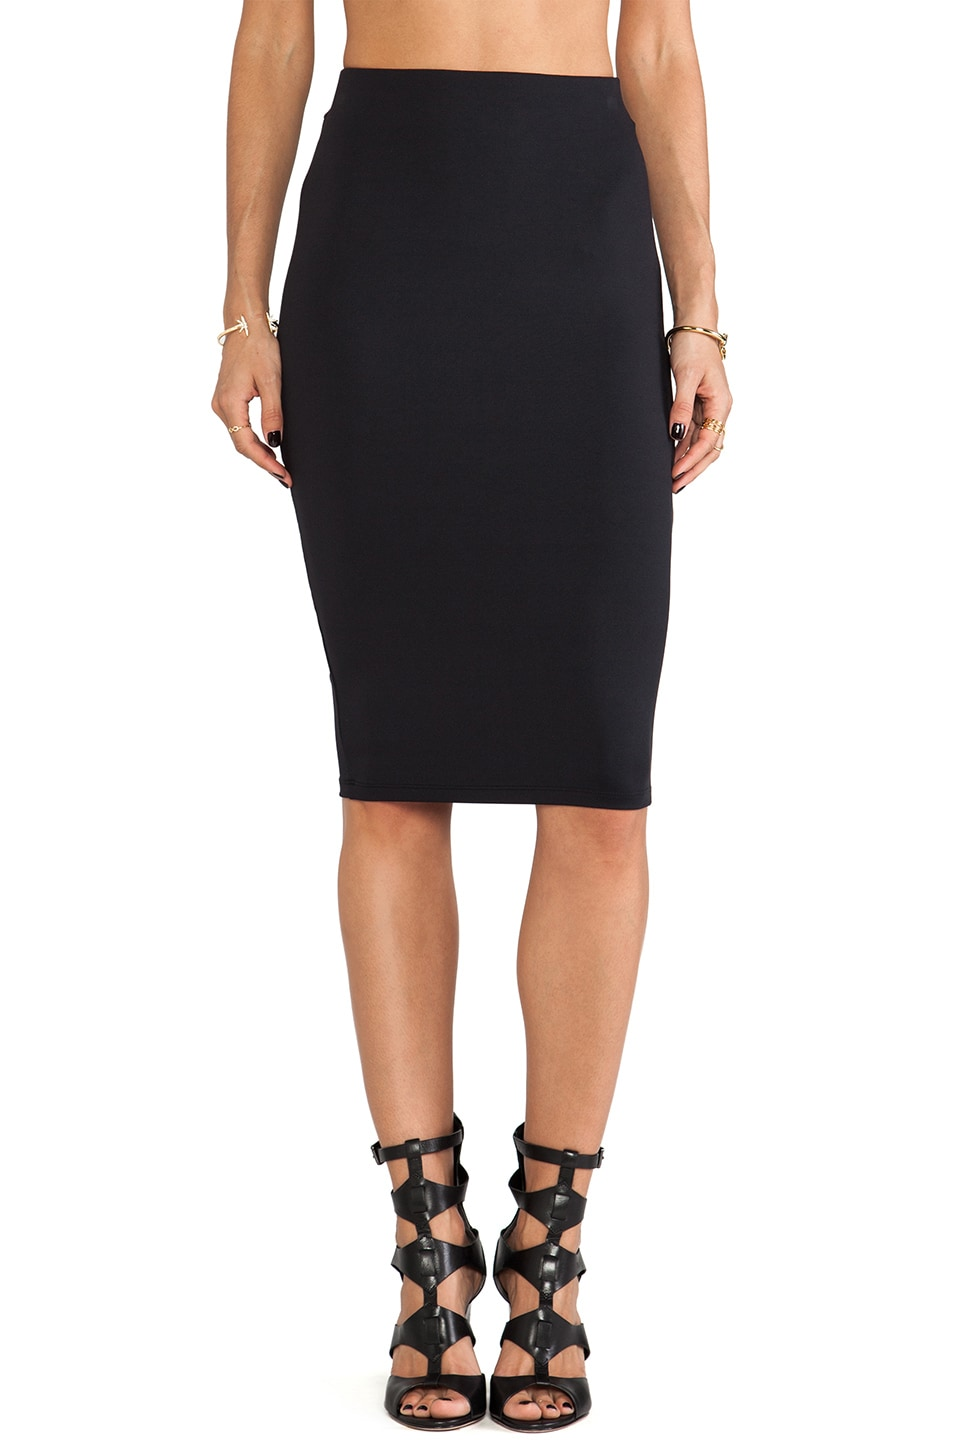 David Lerner Tube Midi Skirt in Classic Black | REVOLVE